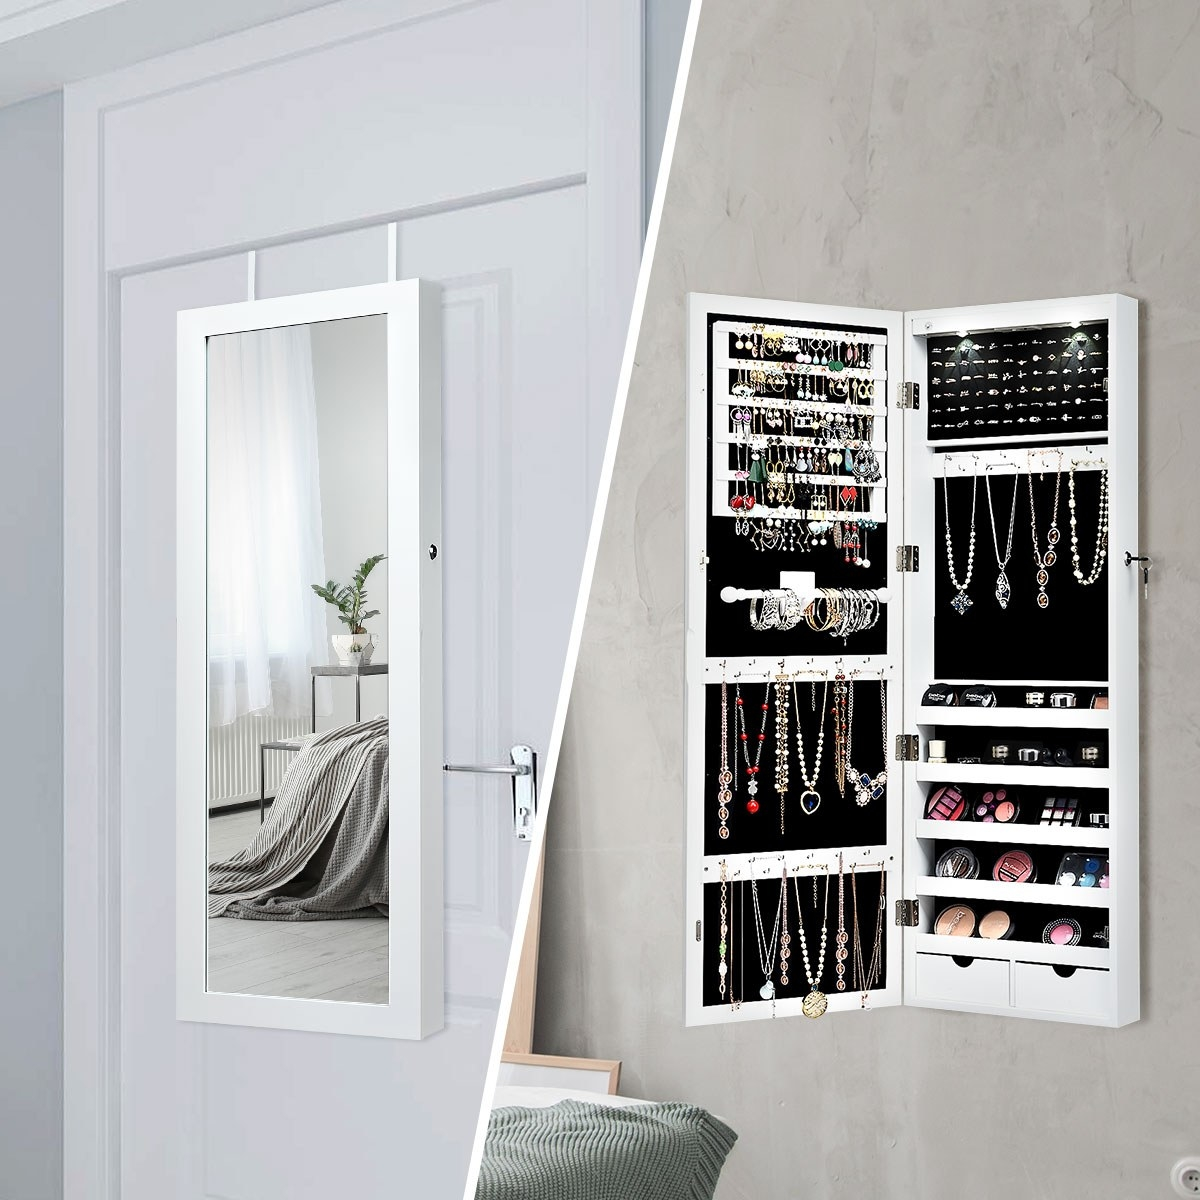 A photo set with mirror hung over the door (left) and the same mirror opened, revealing jewelry inside